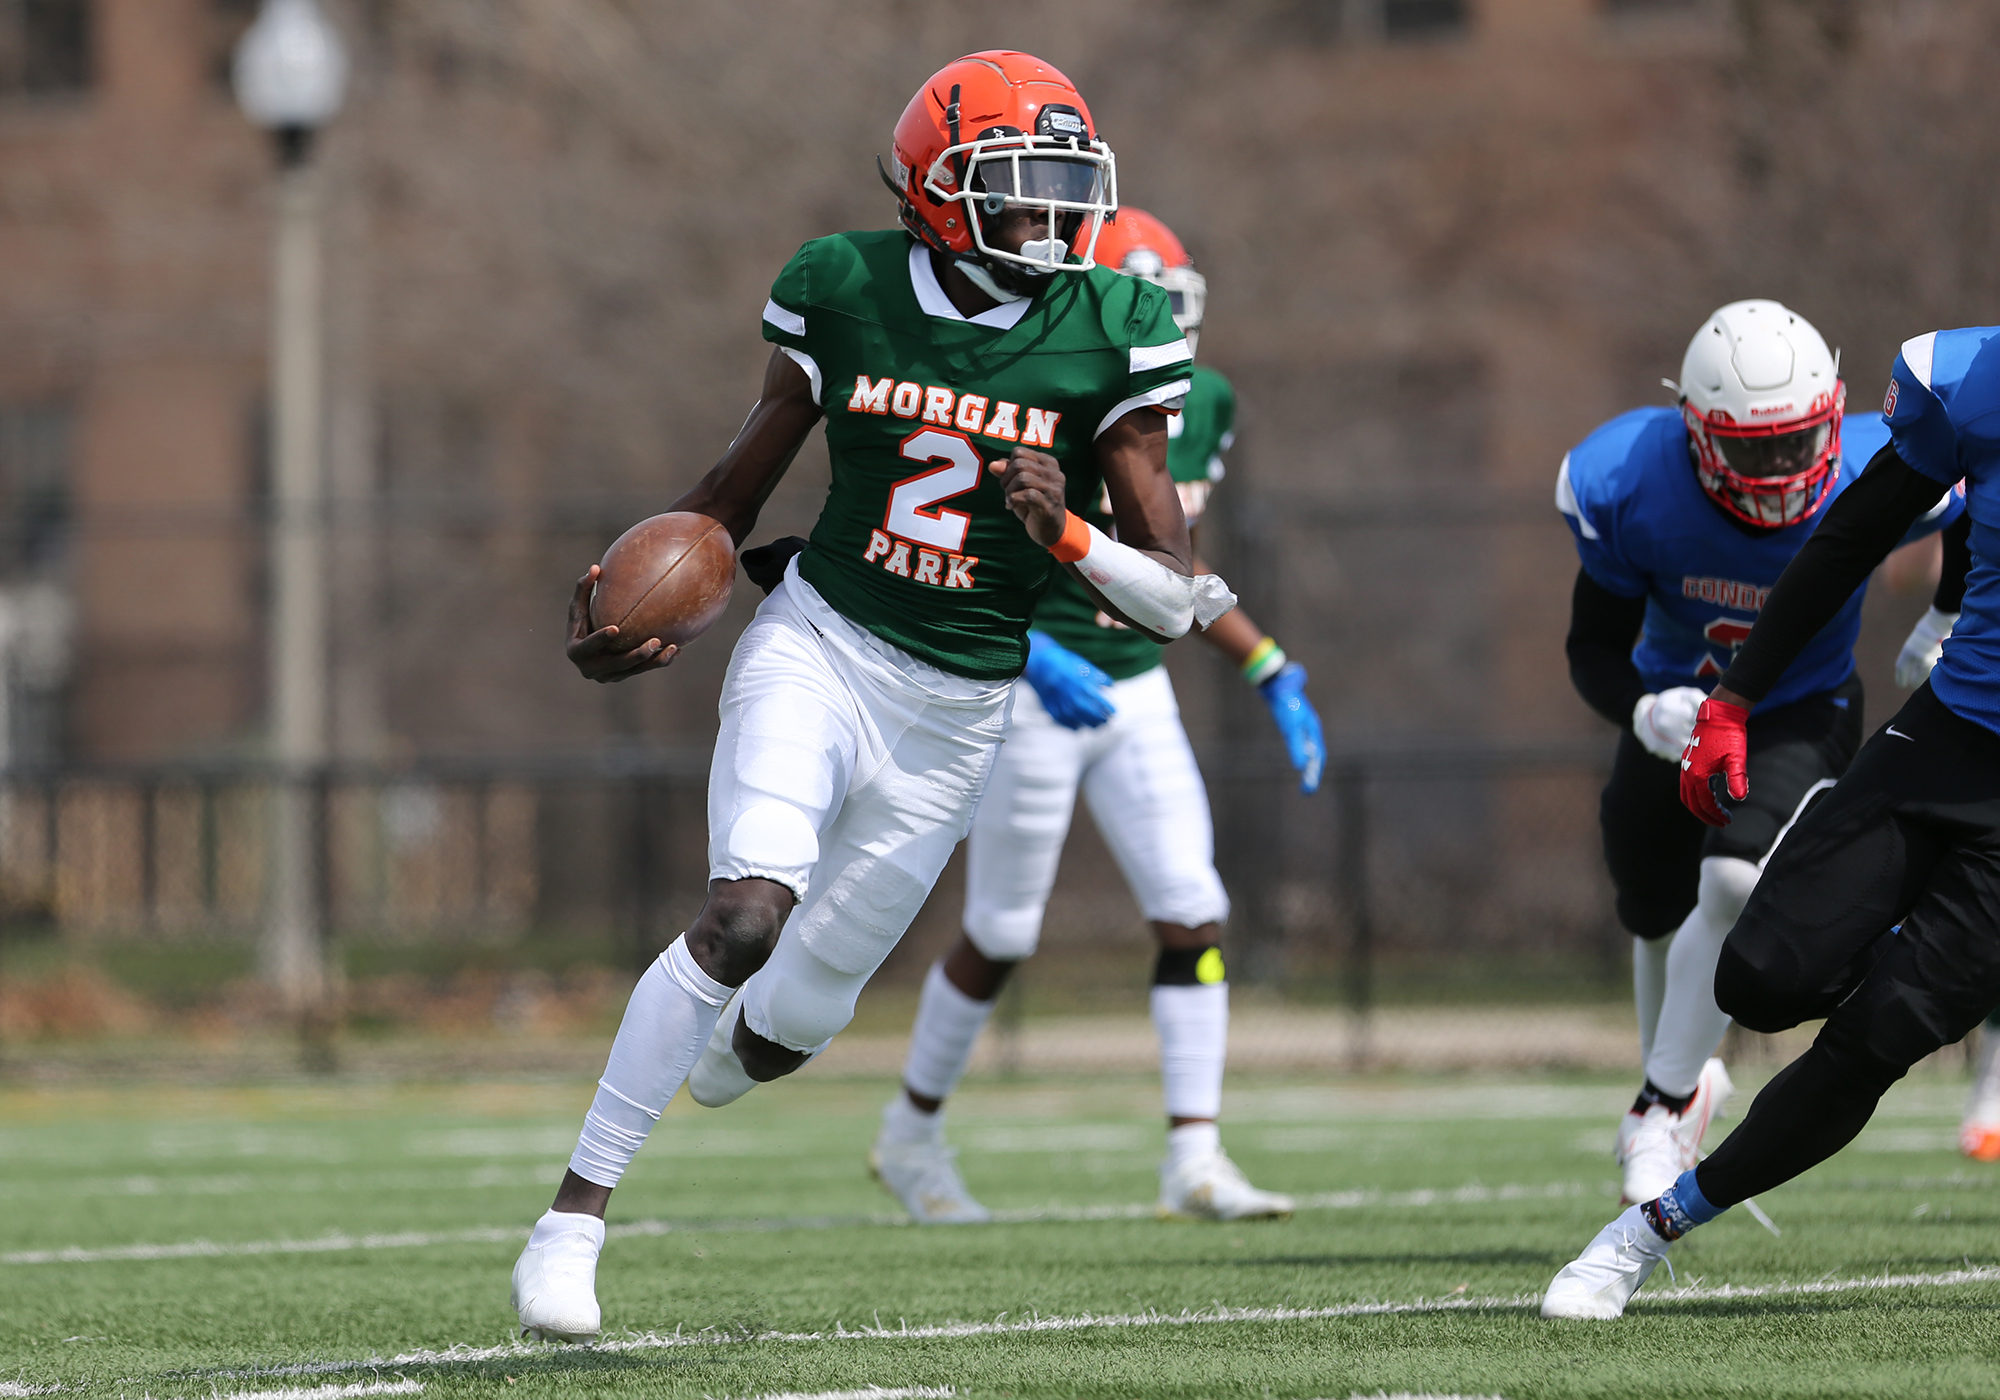 Morgan Park's Aaron Warren (2) tucks the ball and decides to run against Curie.